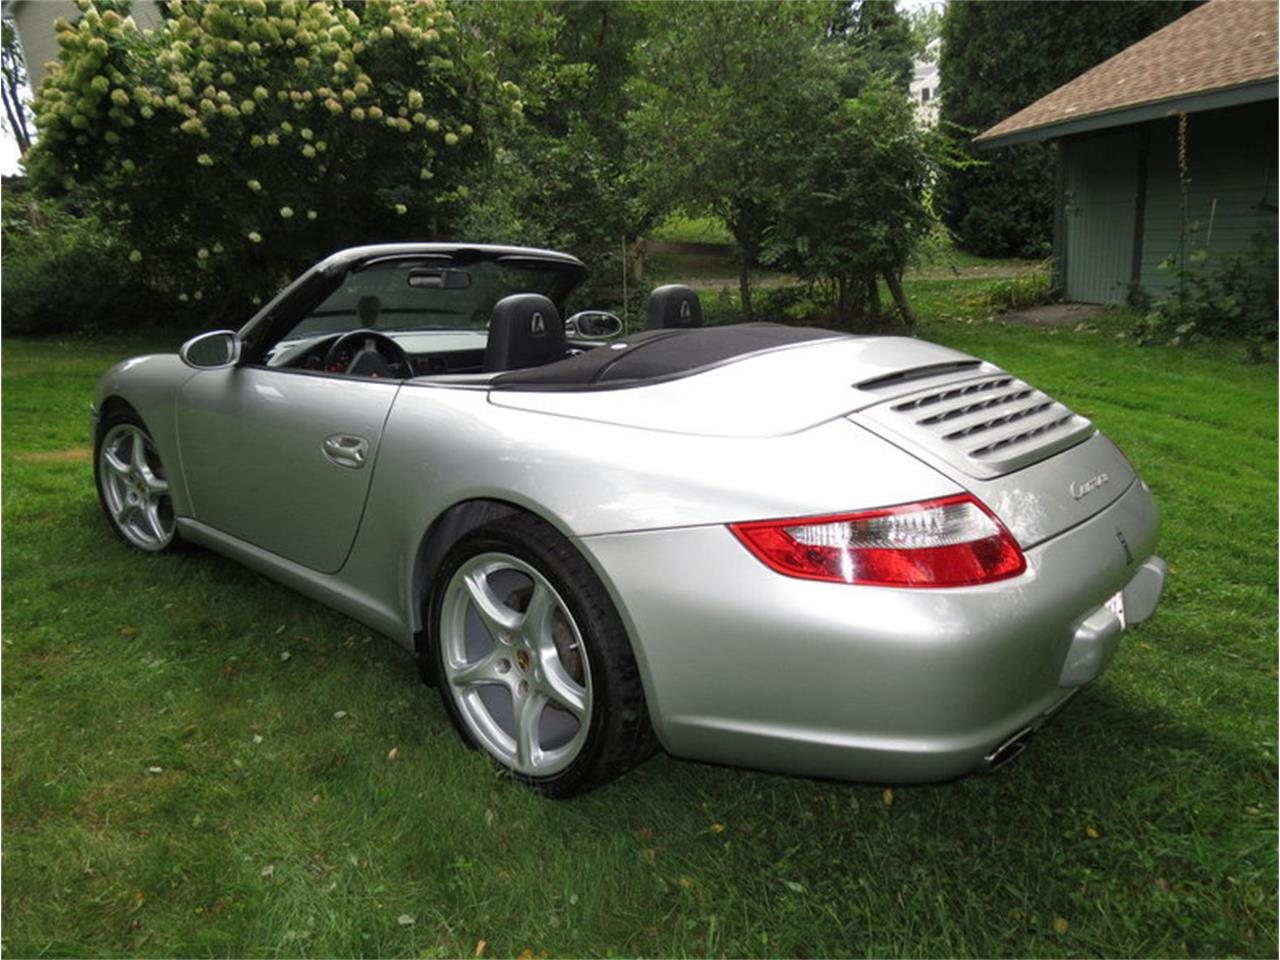 Large Picture of 2005 Porsche 911 Carrera located in North Andover Massachusetts - $29,950.00 - JD2Q